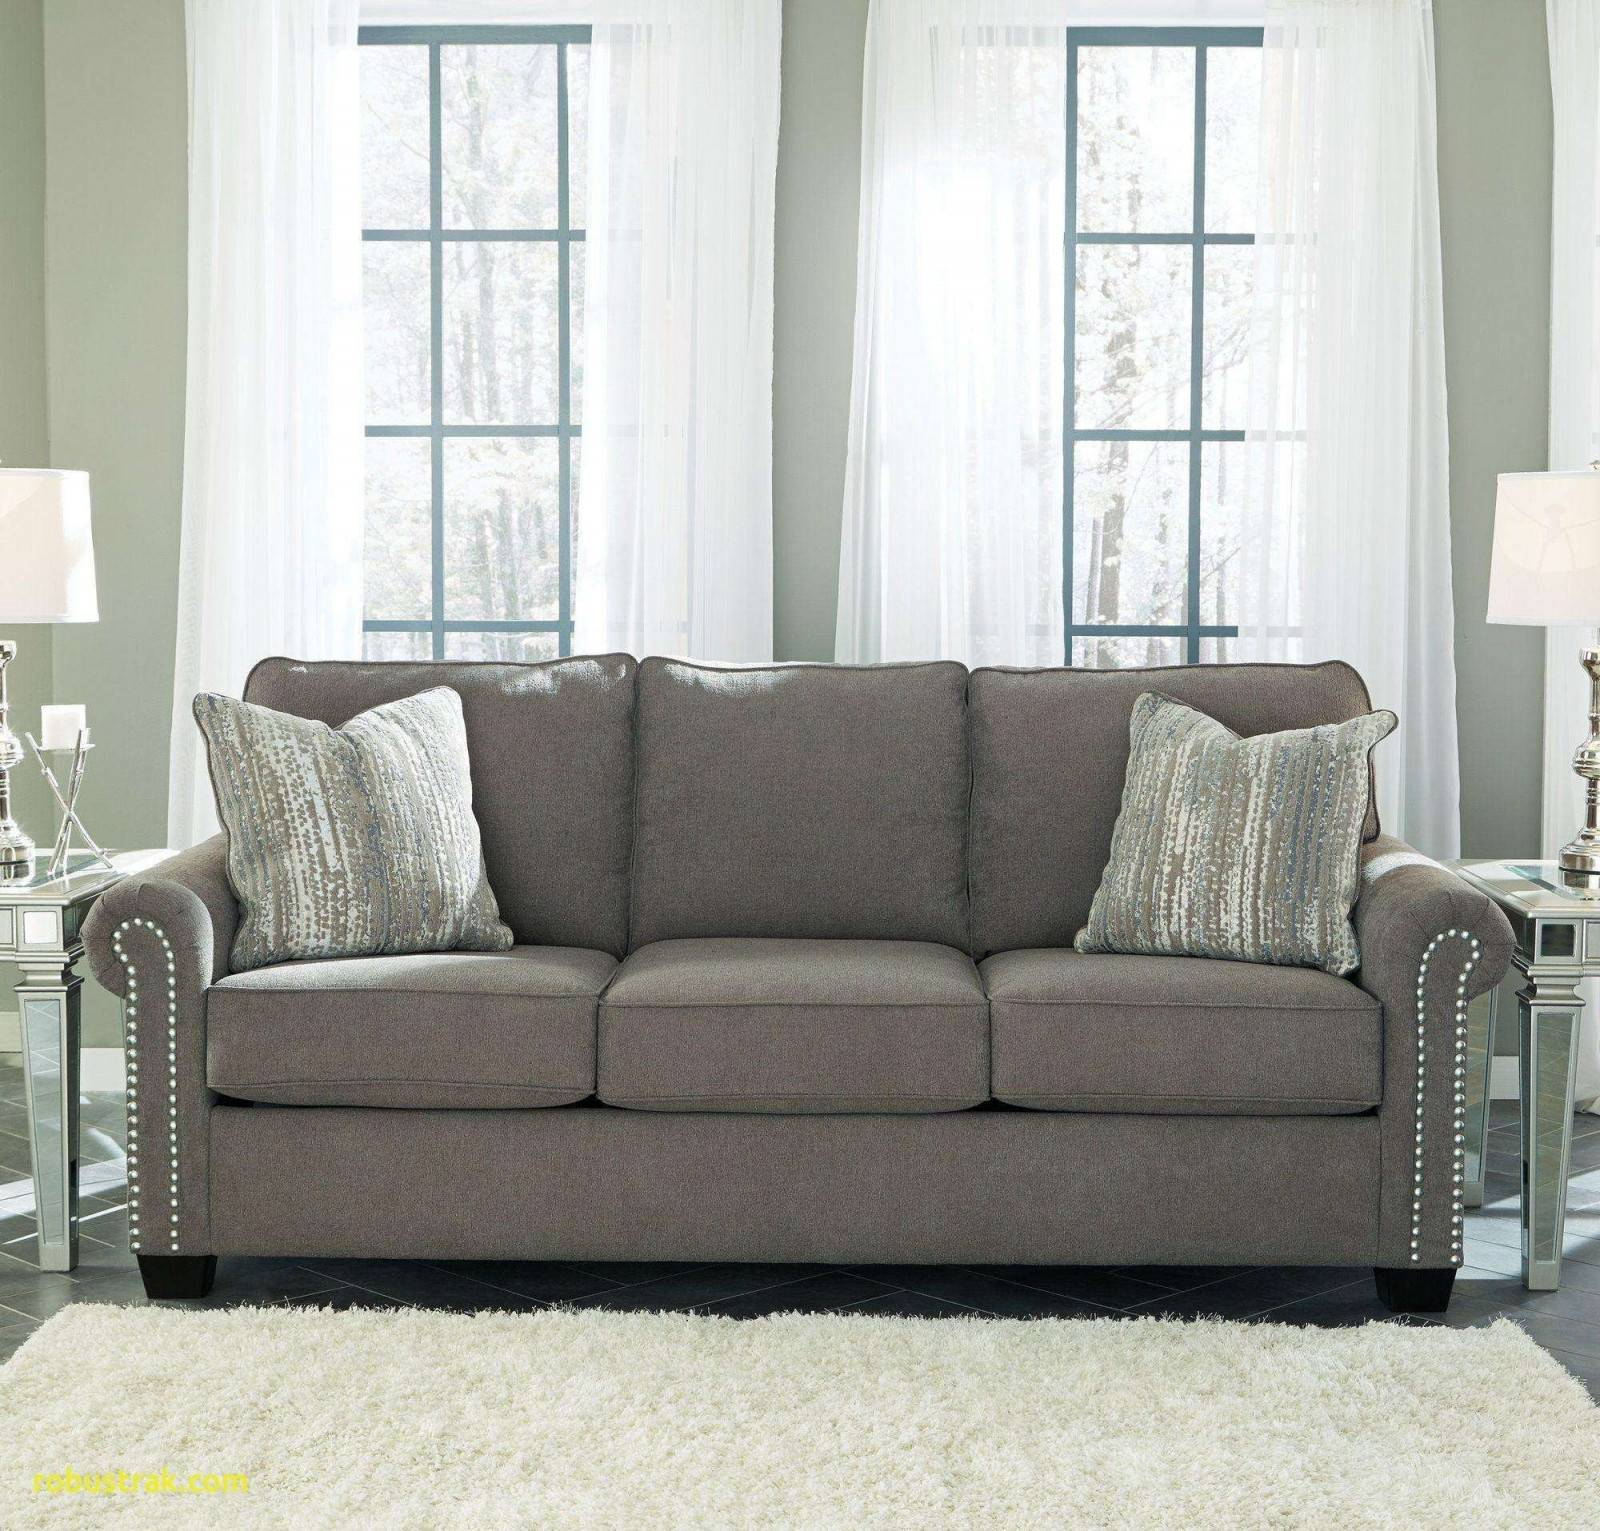 sectional couch sofa fresh l sectional sofas lovely living room couch ideas incredible l sofa of sectional couch sofa